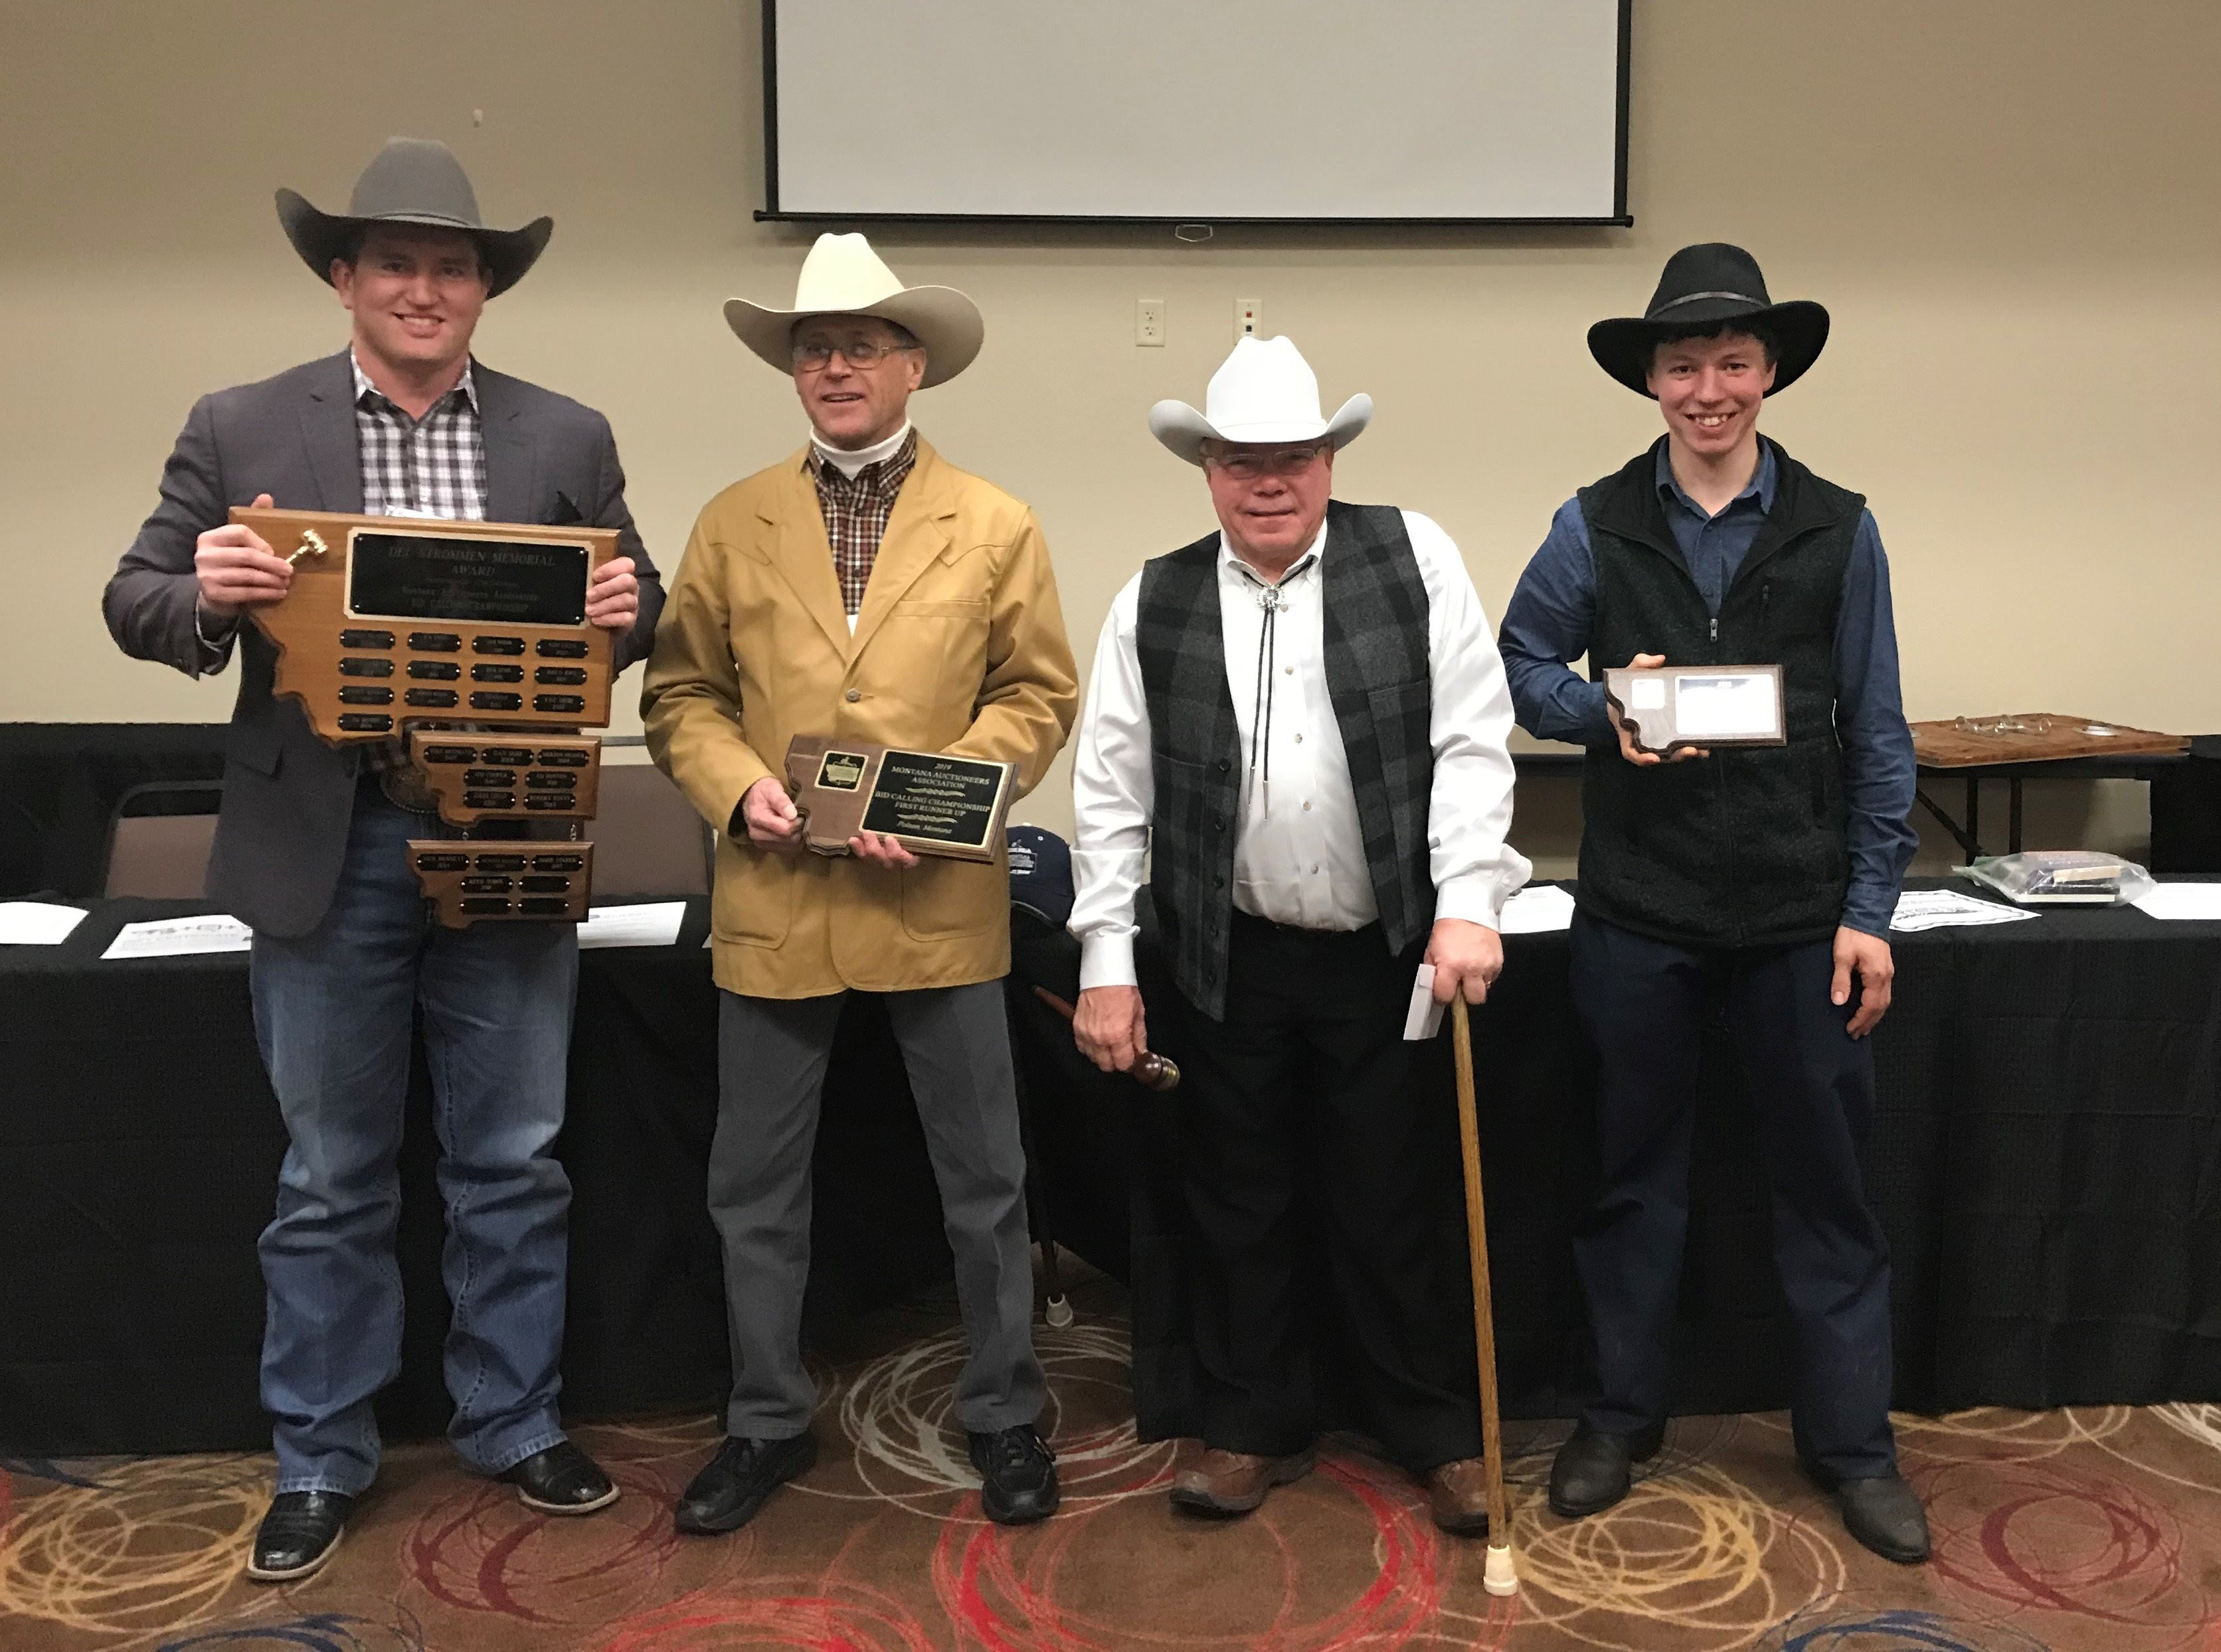 Left to Right: Bid Call Champion Steven Goedert, 1st Runner Up Robert McDowell III, 2nd Runner Up Jayson Shobe, Rookie Champion Daniel Yoder